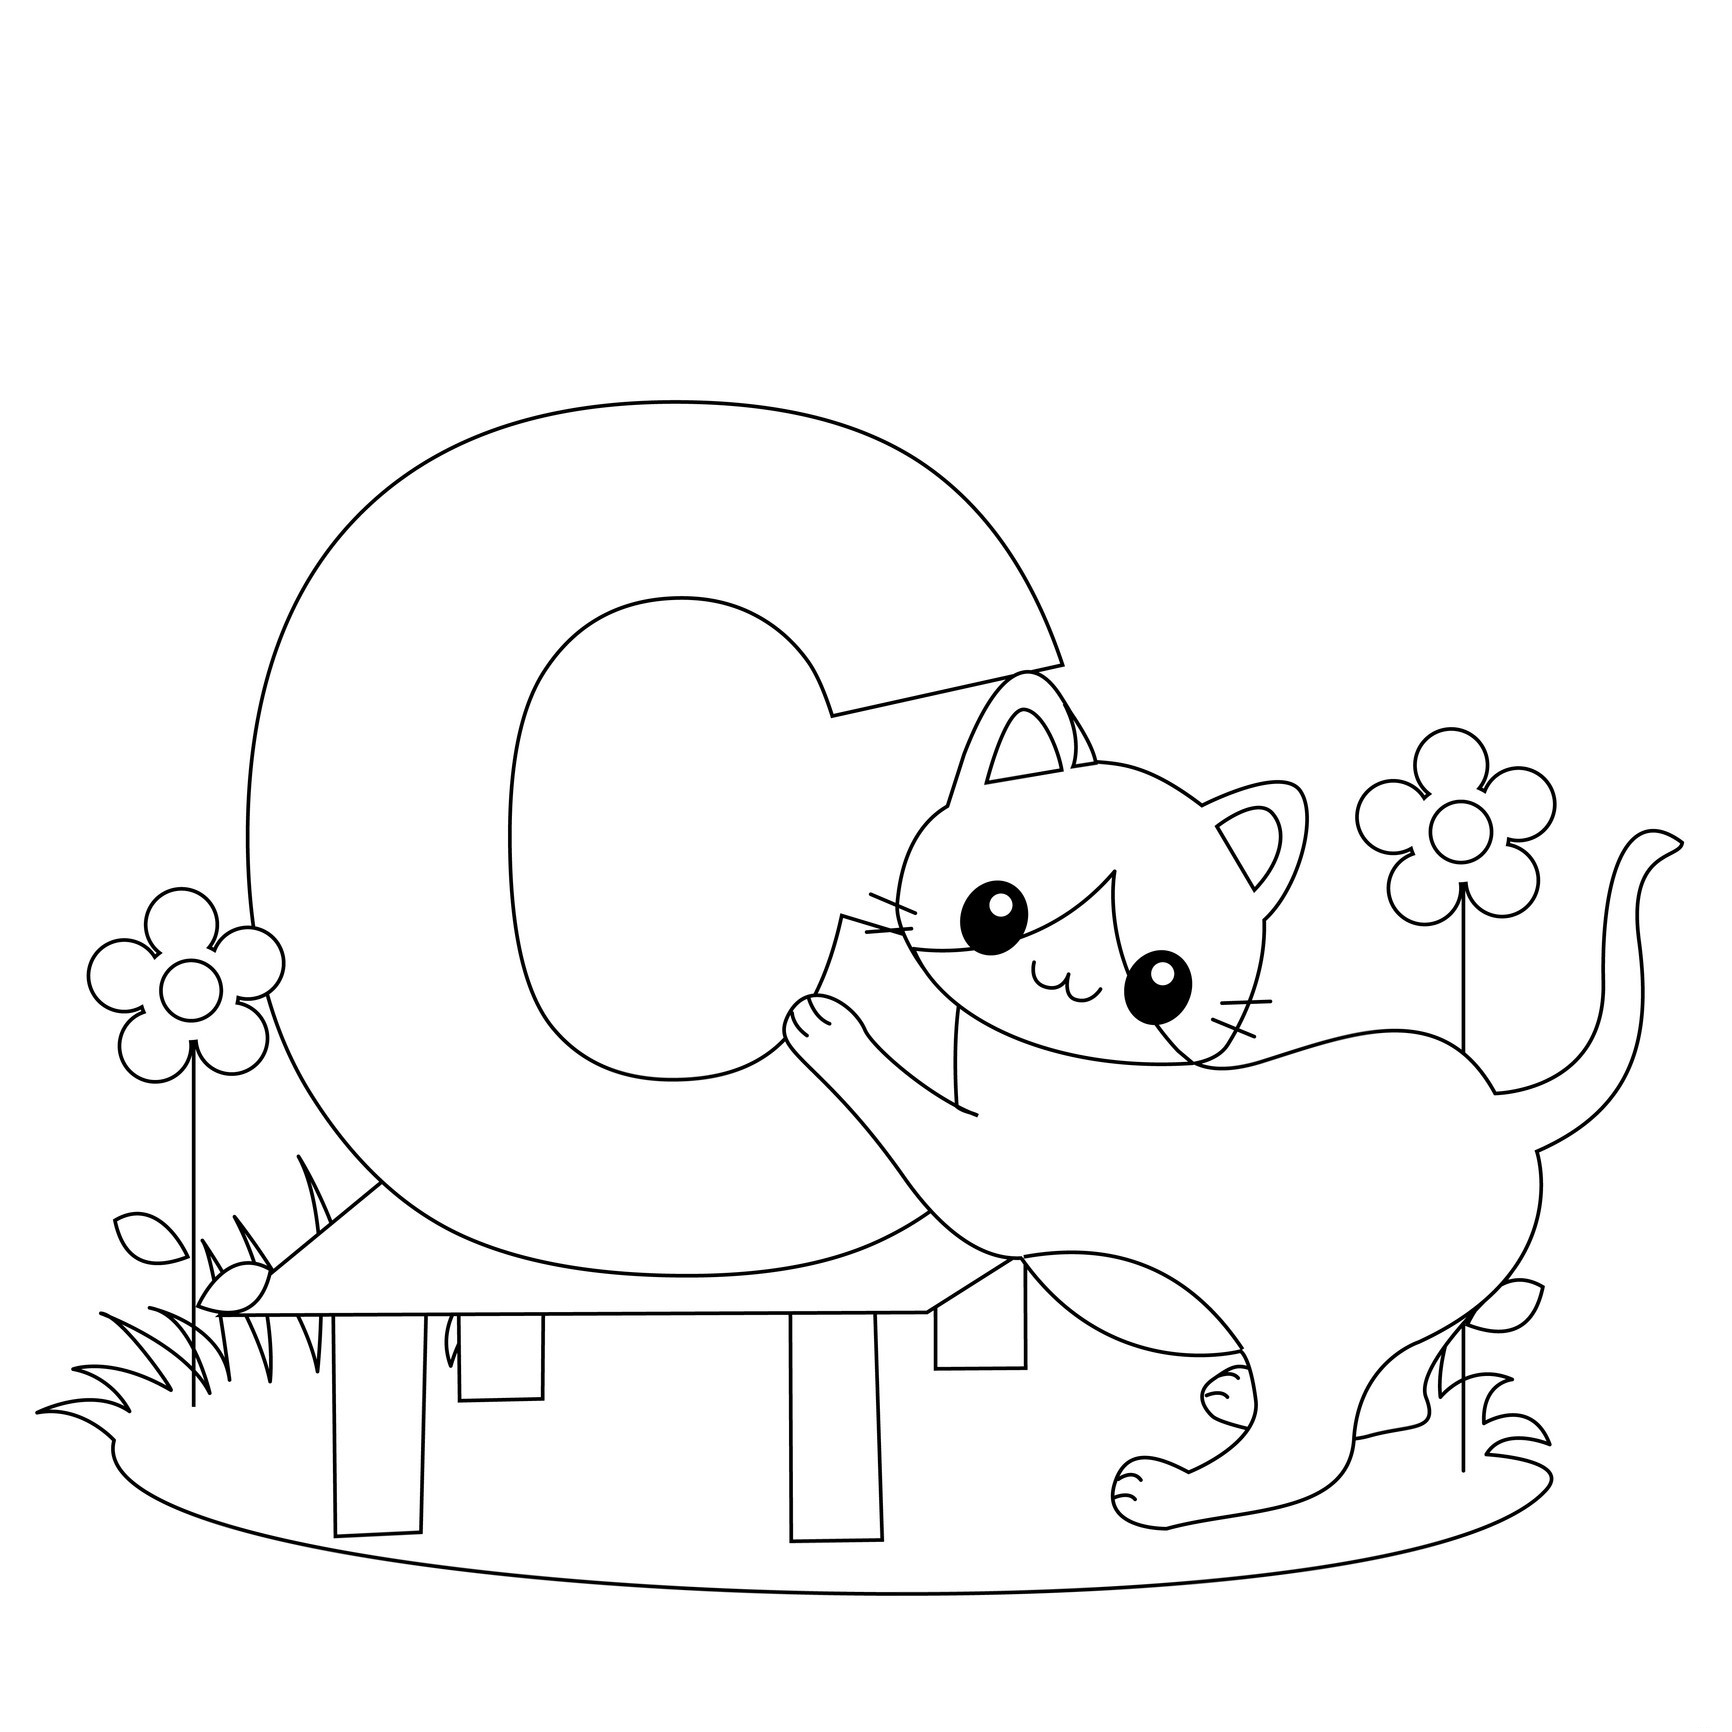 alfabet coloring pages - photo#9